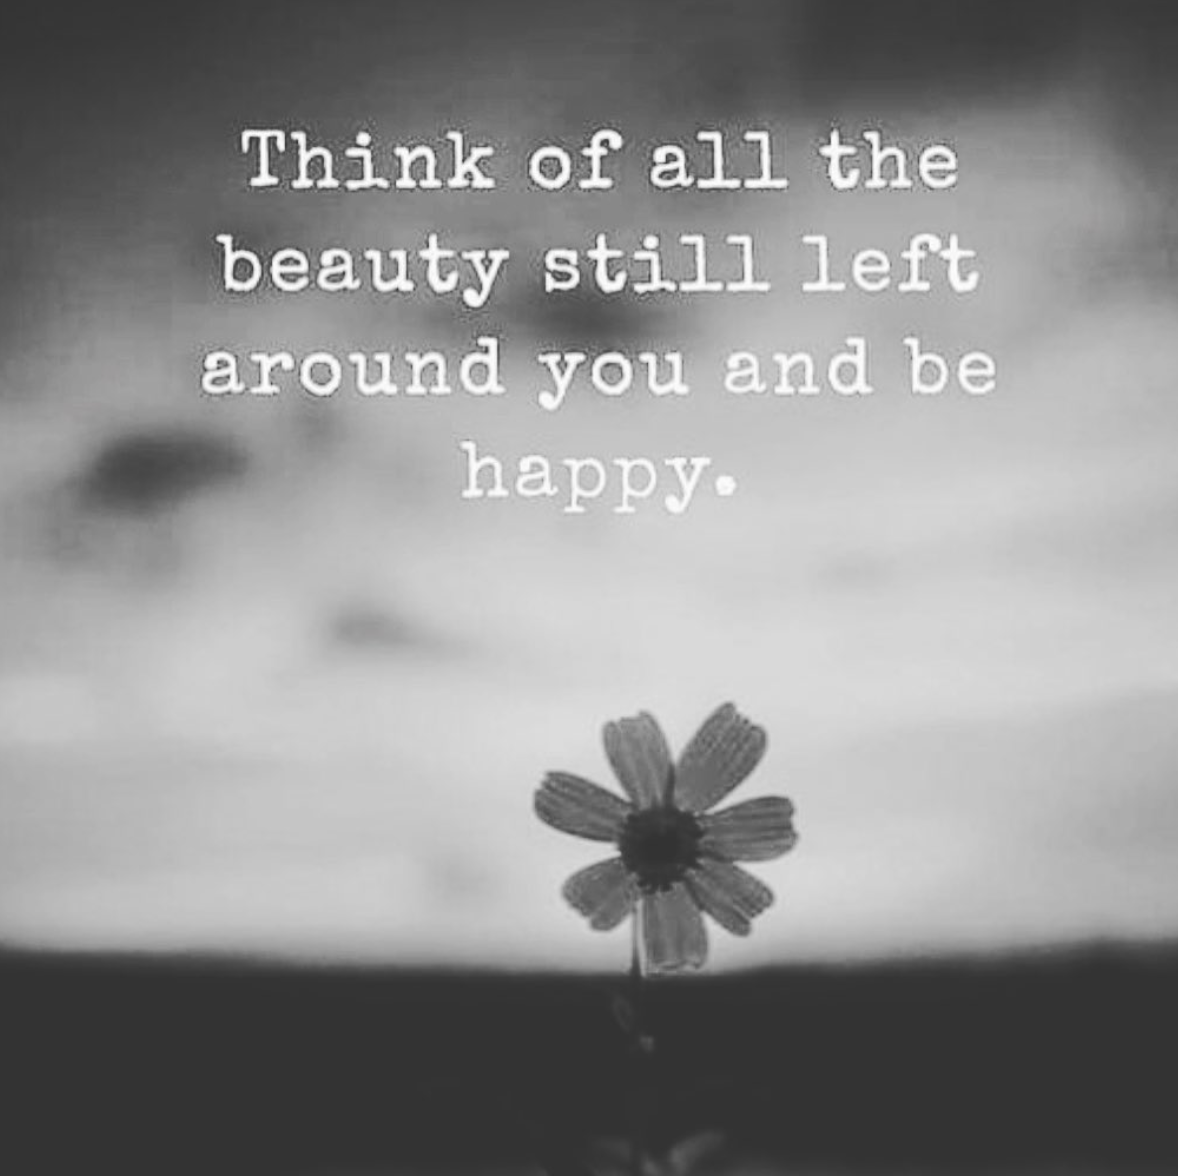 [Image] Think of all the beauty still left around you and be happy.